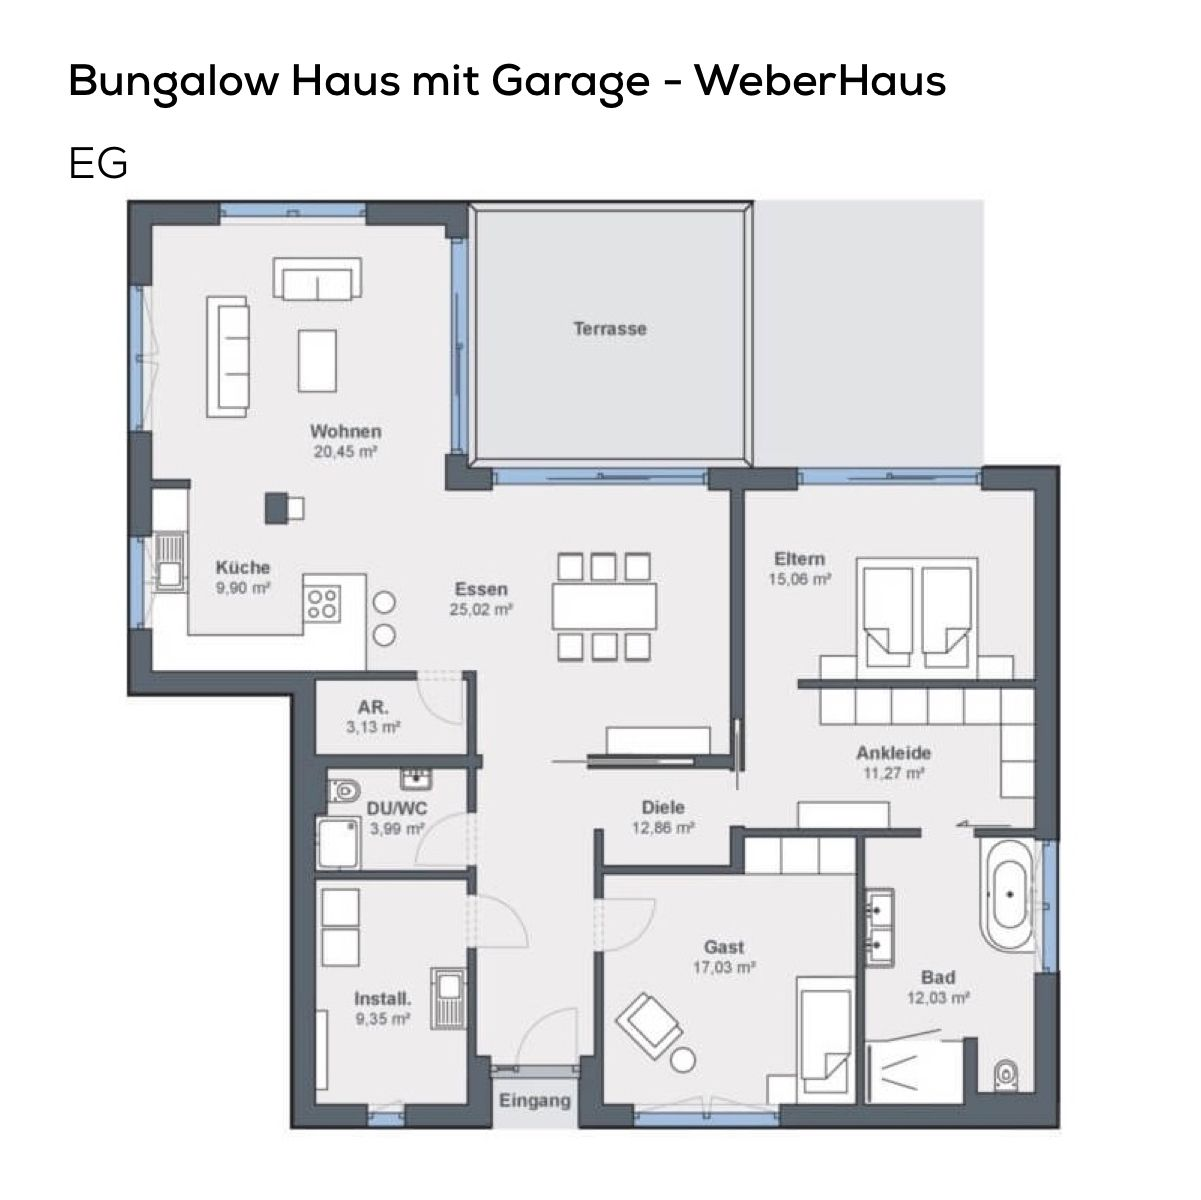 gundriss bungalow haus mit garage pultdach architektur versetzt 3 zimmer 140 qm wfl. Black Bedroom Furniture Sets. Home Design Ideas